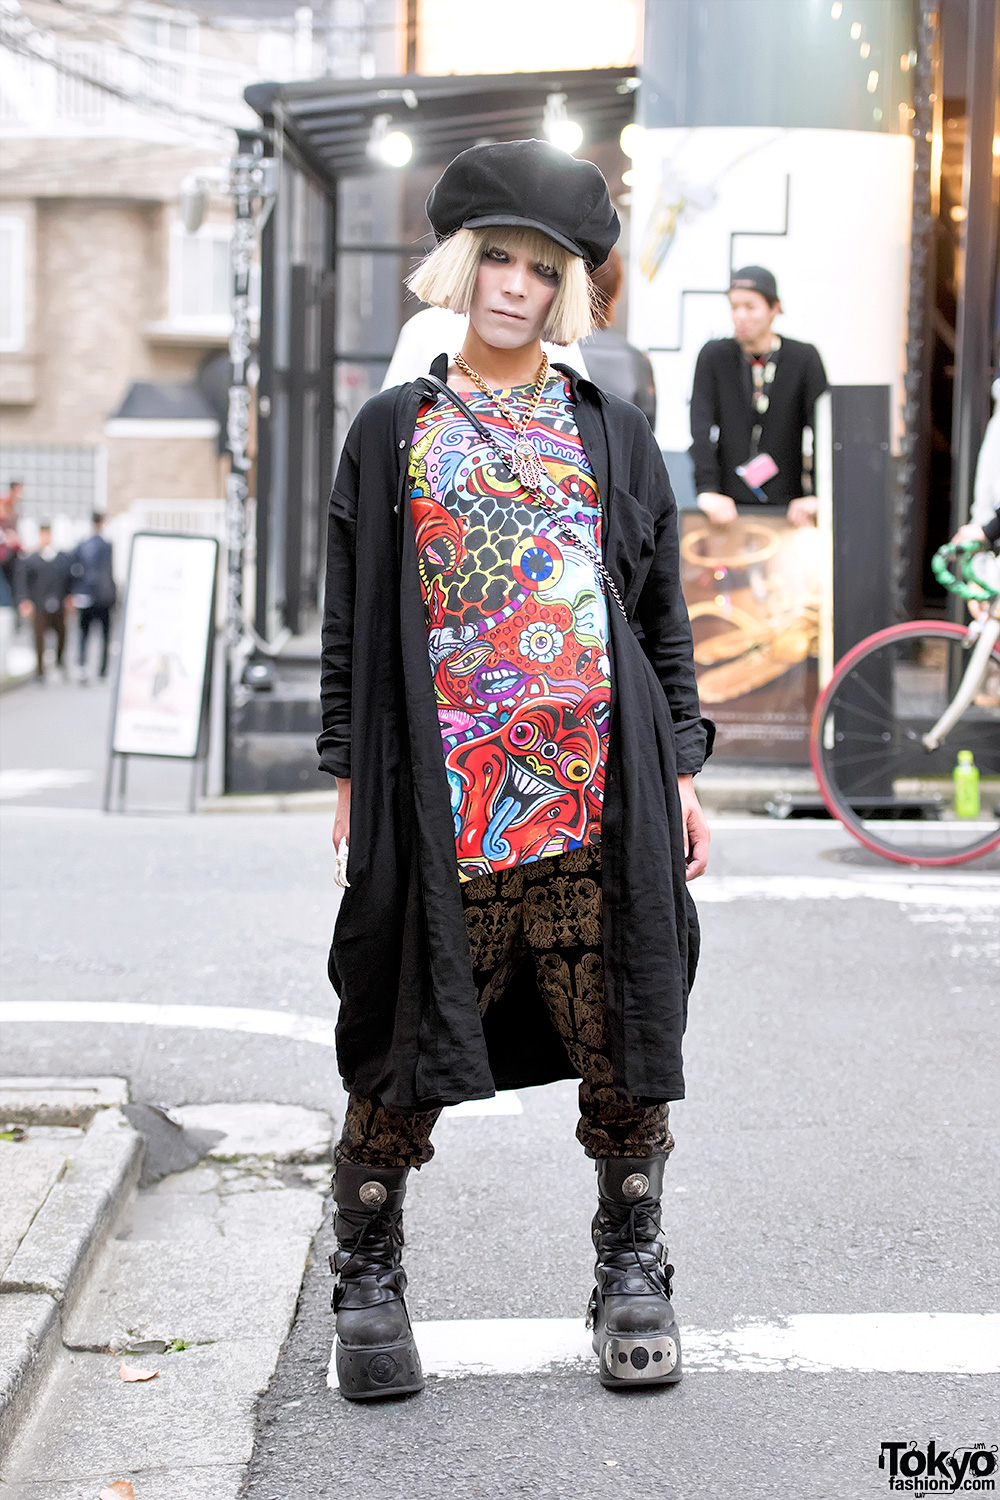 Harajuku Guy W/ Malicious.X Eye Bag, Dog Harajuku